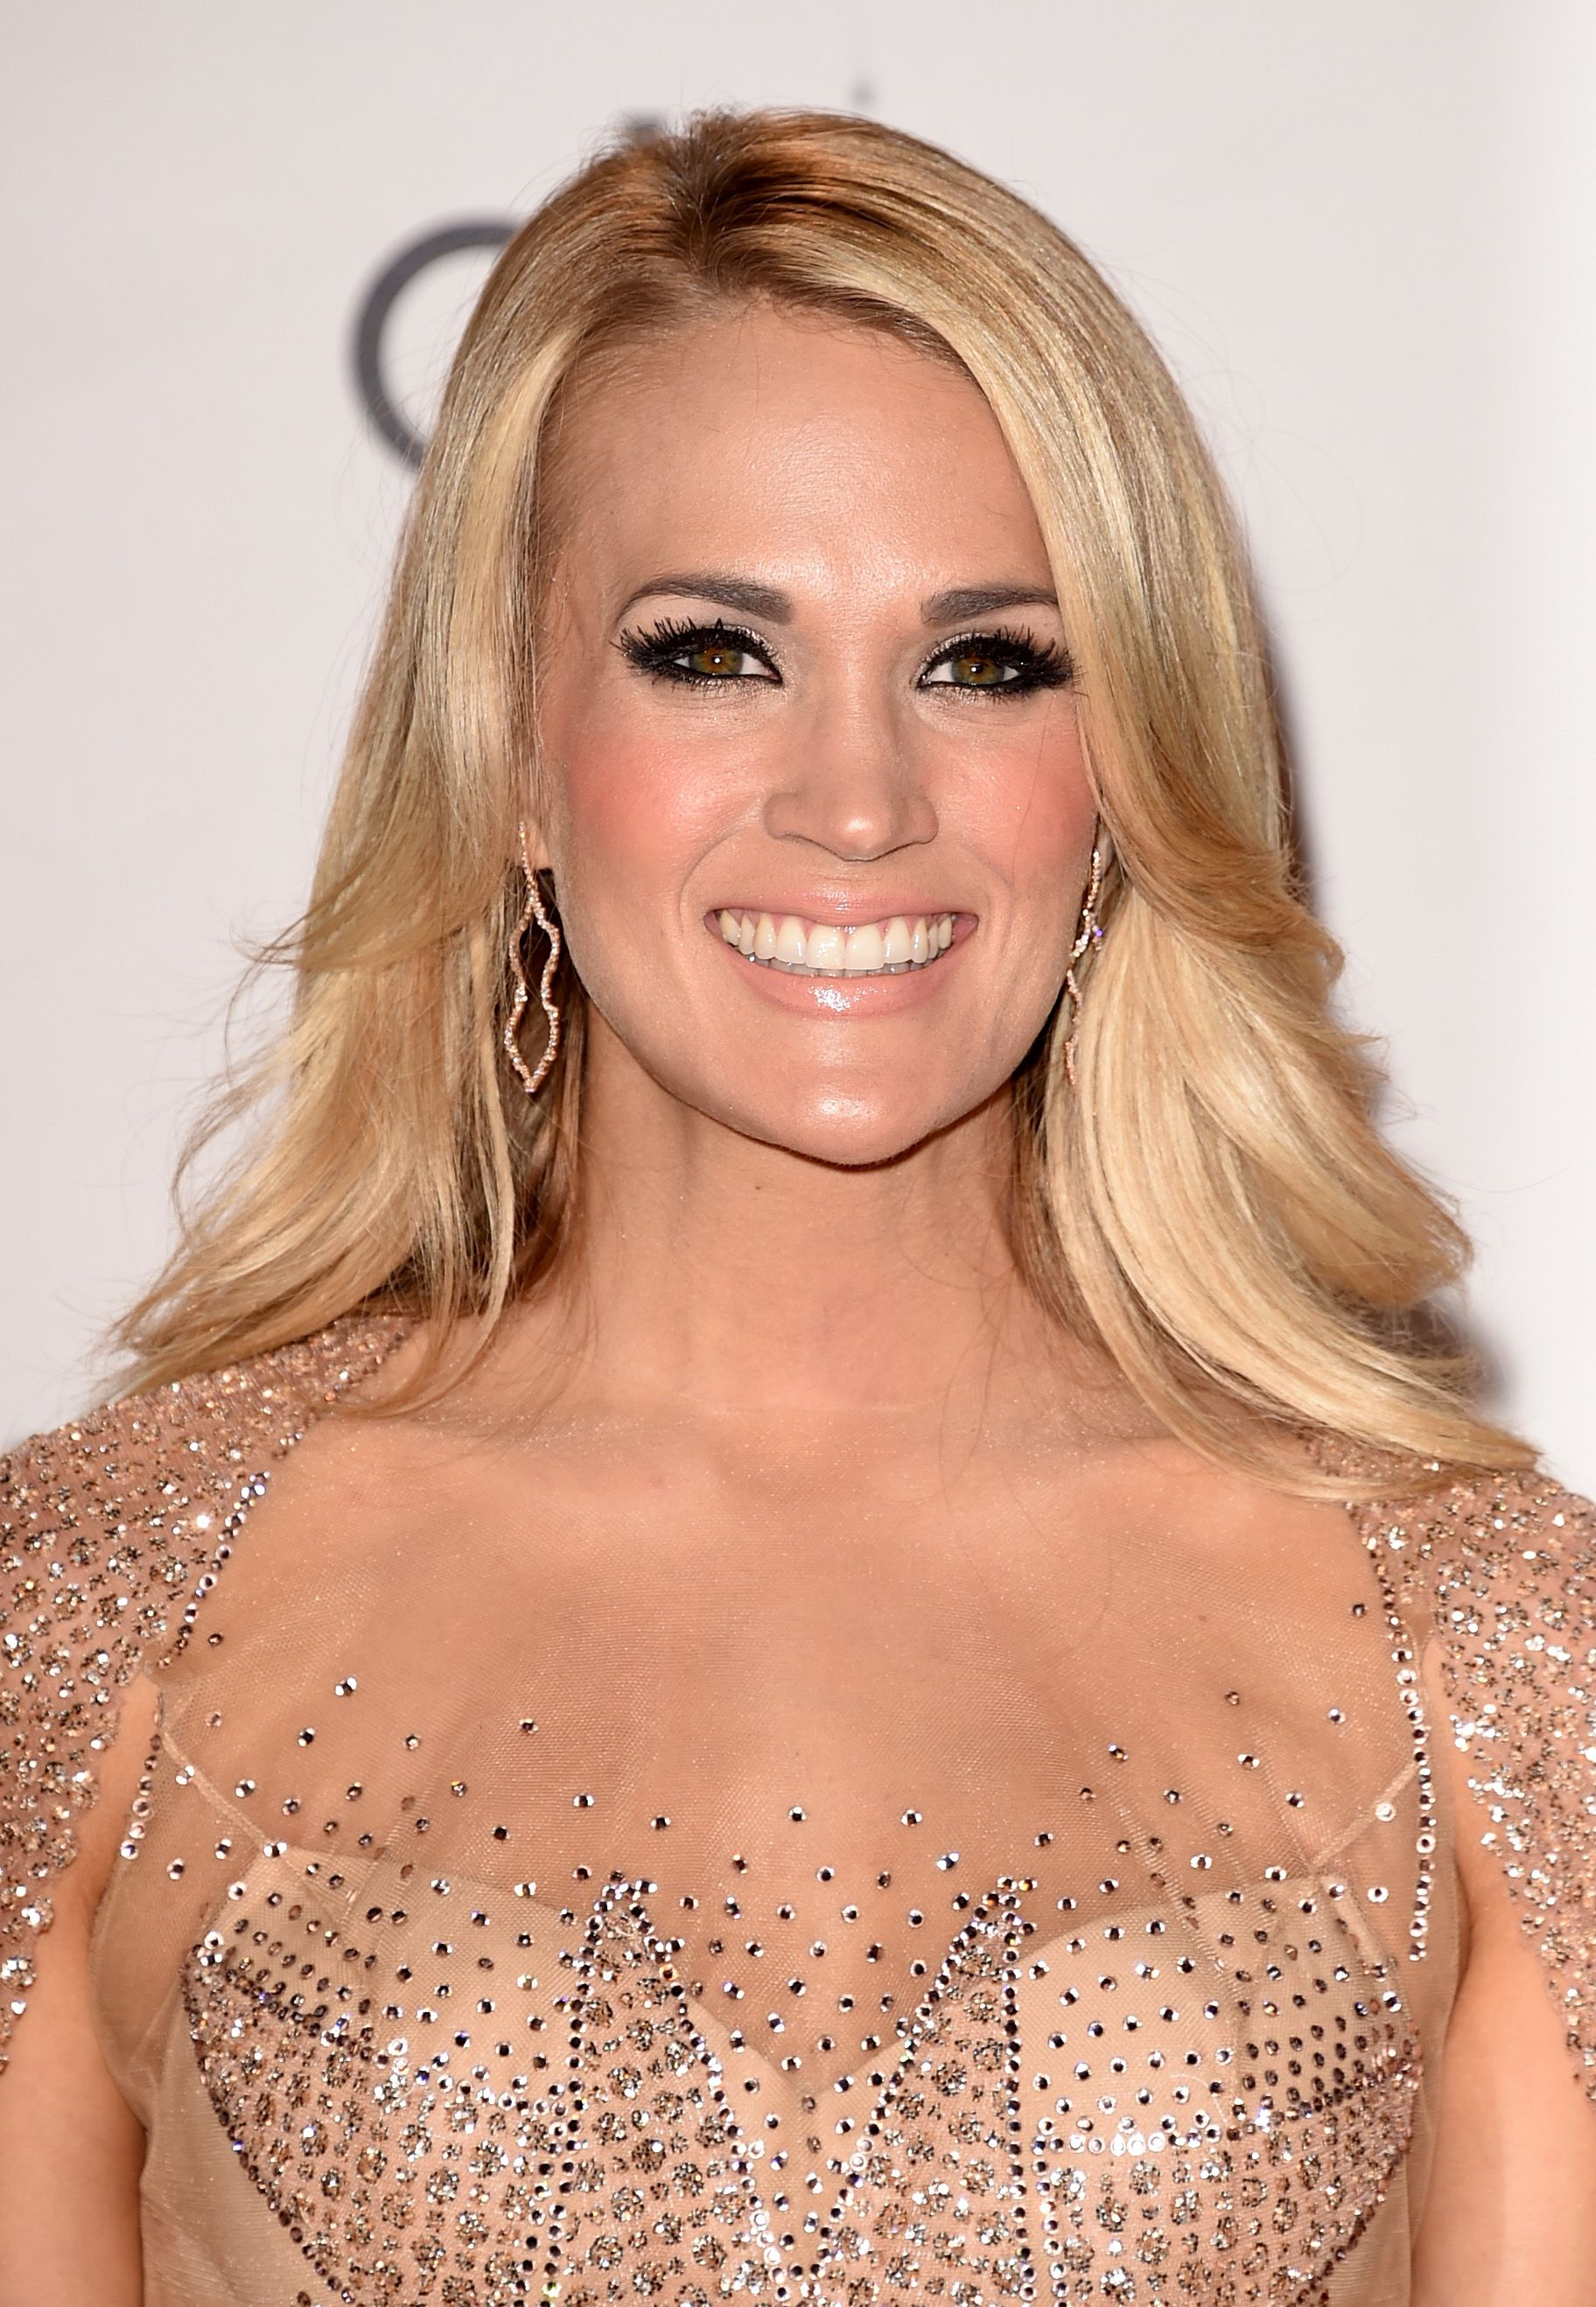 Carrie Underwood in the press room during the 2015 American Music Awards at Microsoft Theater on November 22, 2015 in Los Angeles, California | Photo: GettyImages